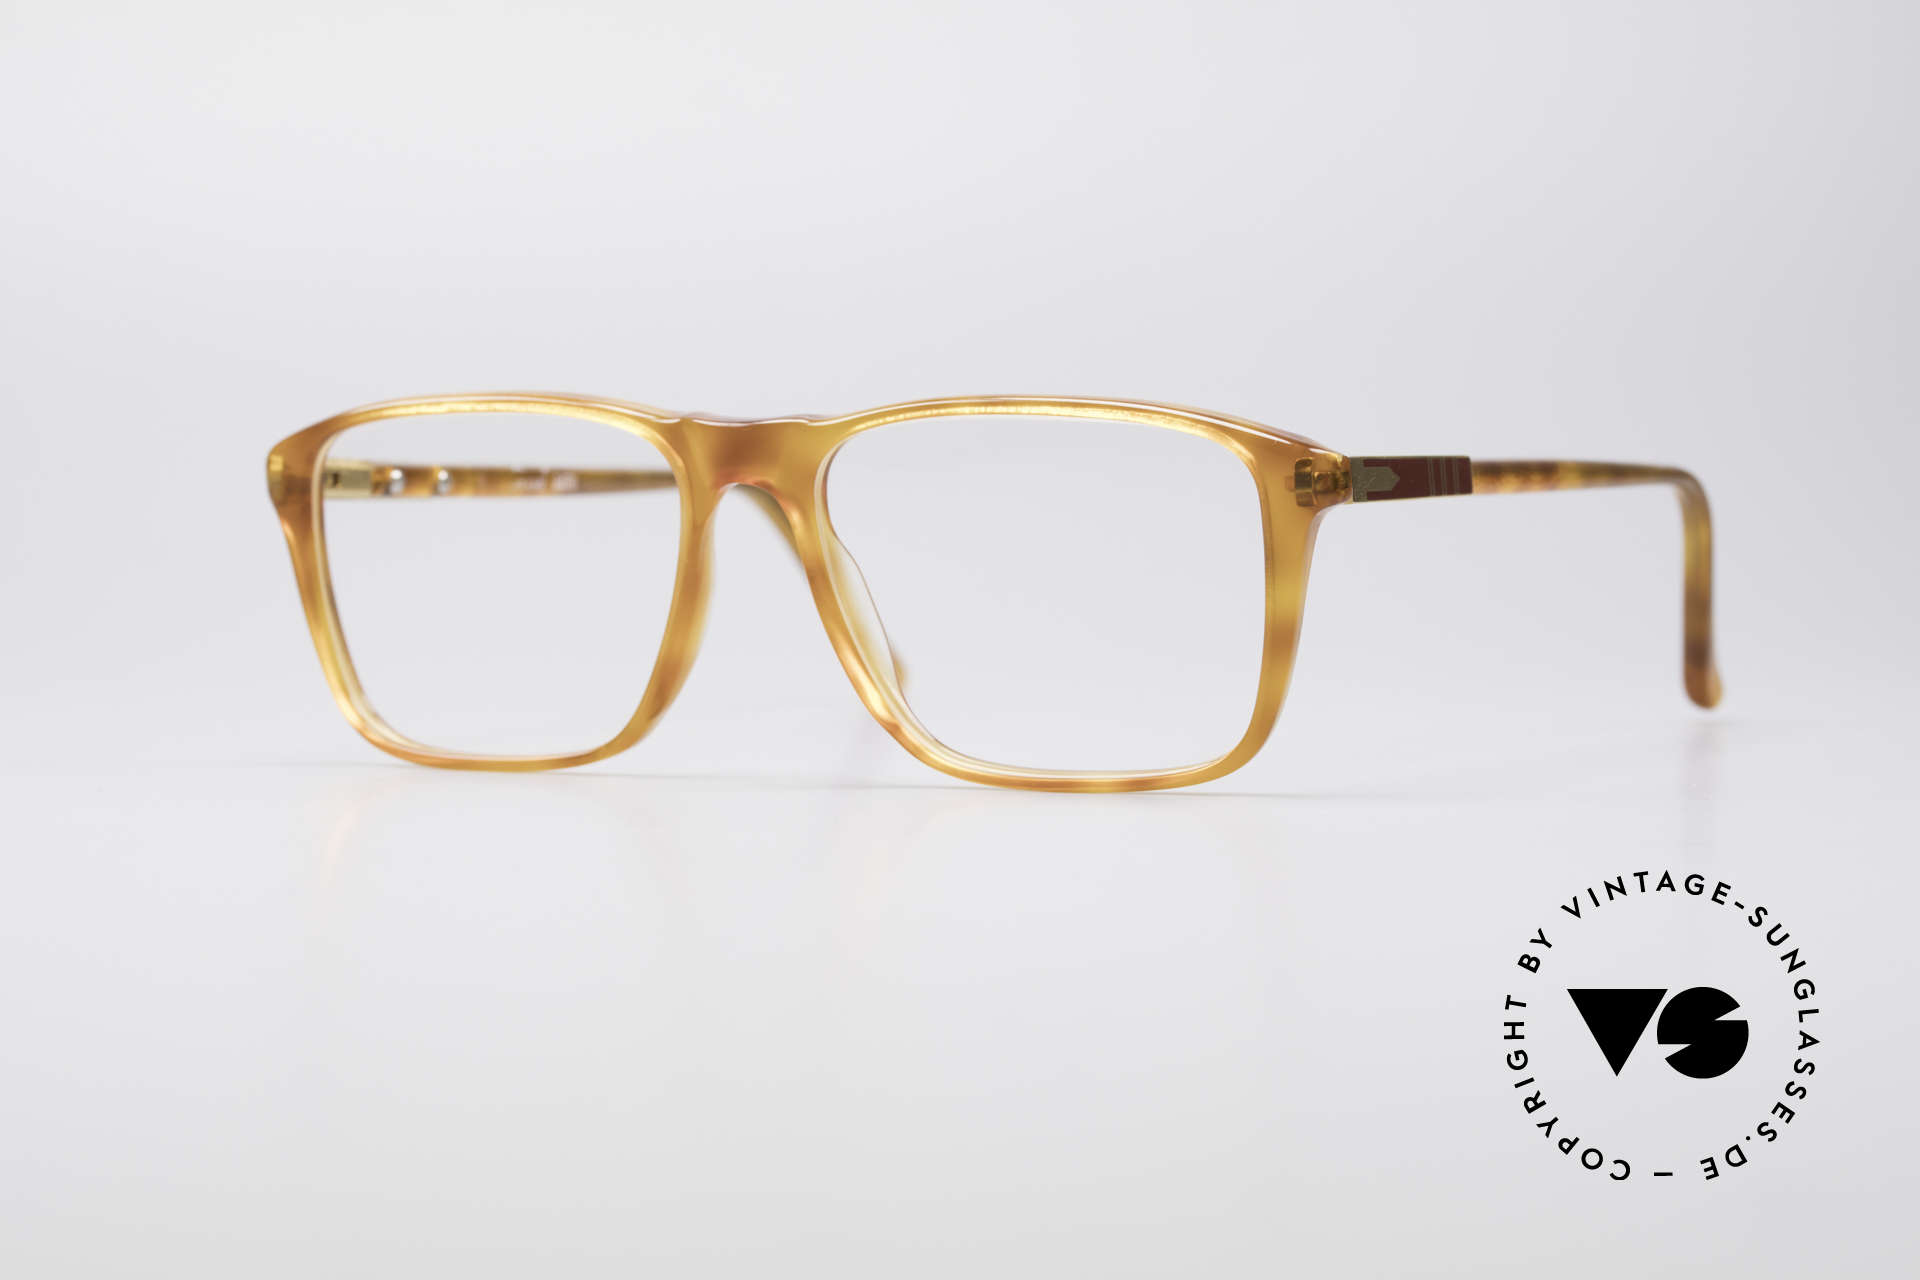 Persol Manager 13 Ratti Gold Plated 80's Frame, famous 80's MANAGER COLLECTION by Persol Ratti, Made for Men